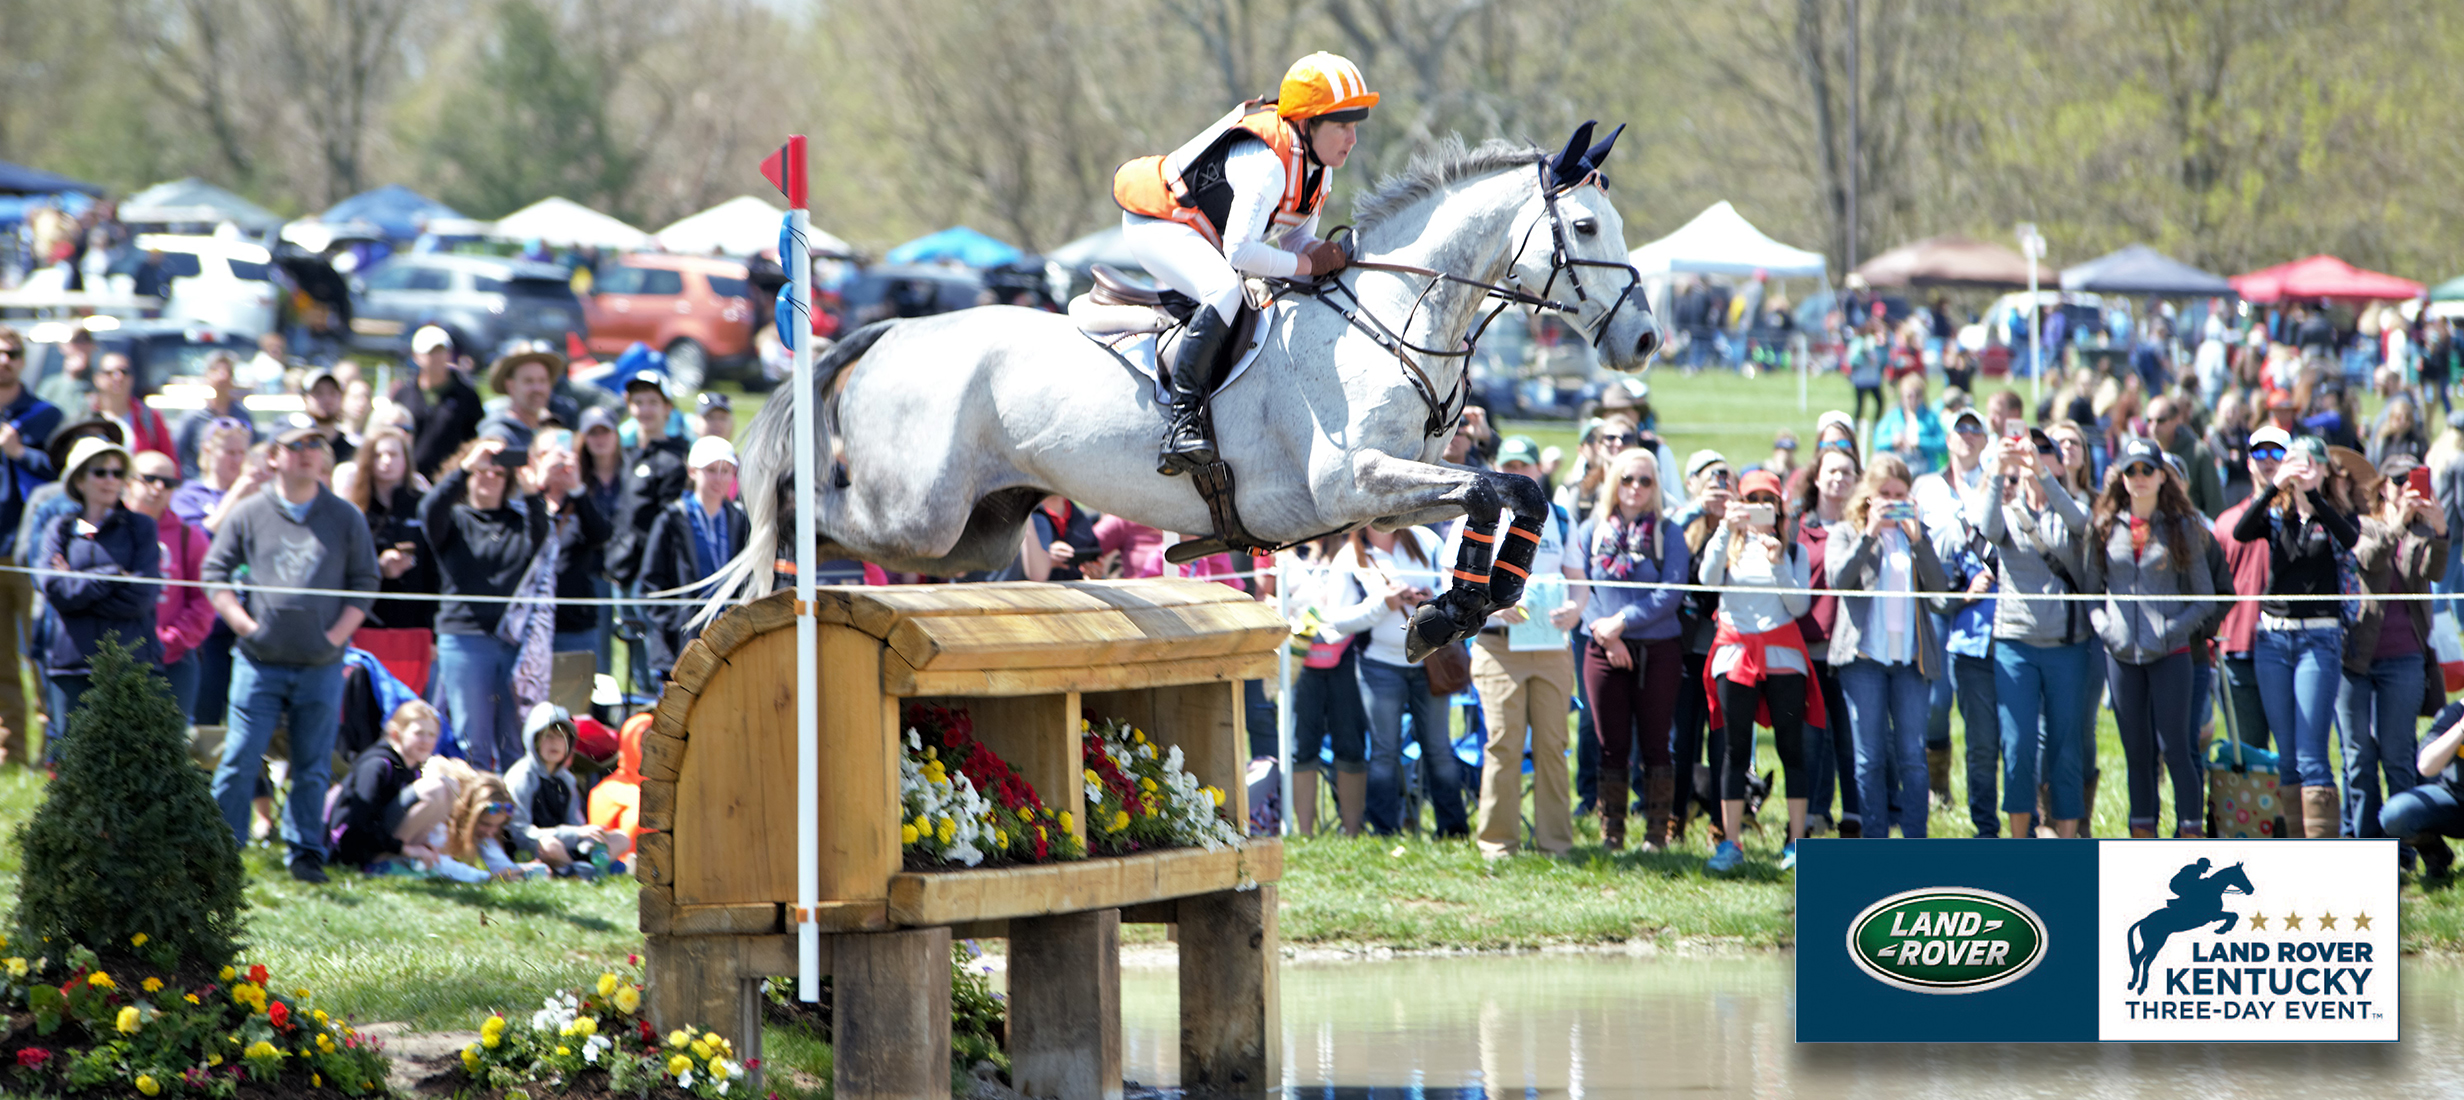 Sharon White on Cooley On Show at the 2018 Land Rover Kentucky Three-Day Event (pc: Kristi Crowe)